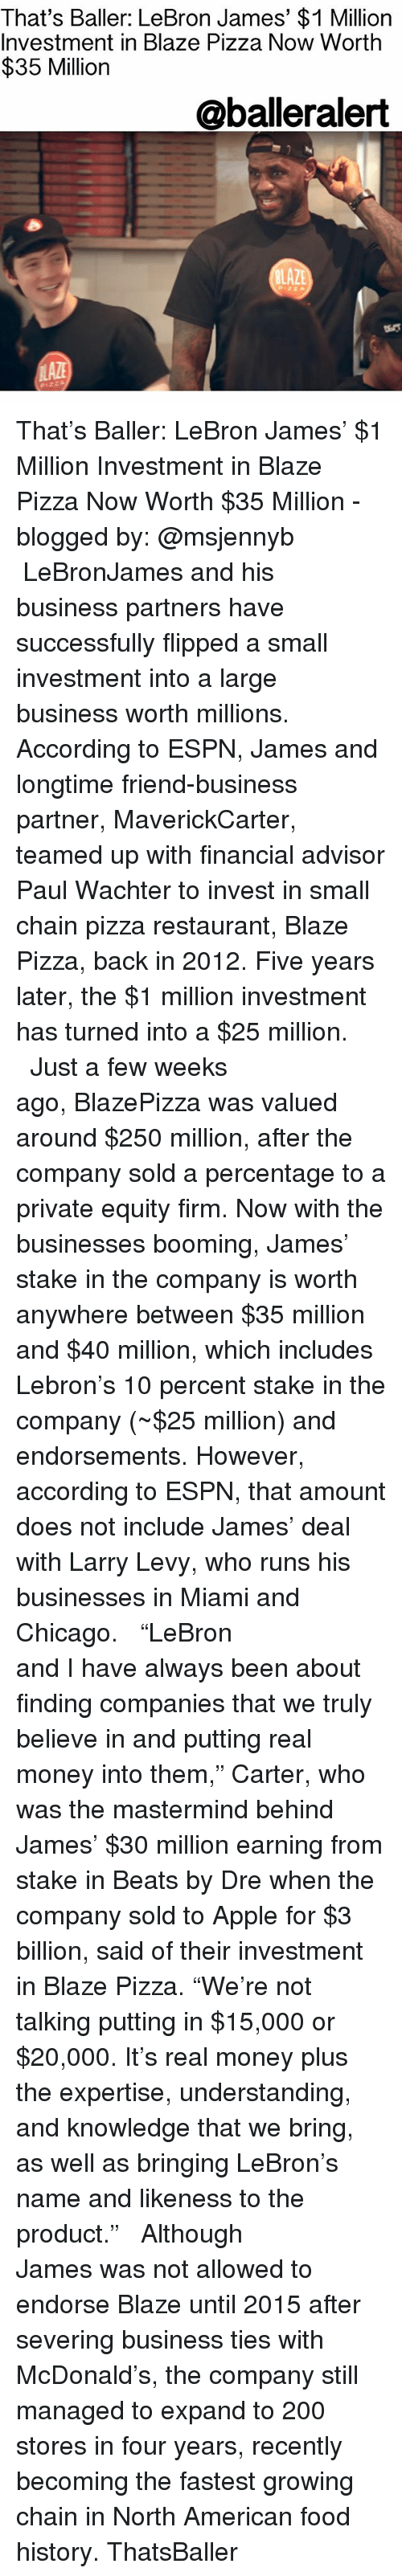 "Beats by Dre: That's Baller: LeBron James' $1 Million  Investment in Blaze Pizza Now Worth  $35 Milliorn  @balleralert  LAZE That's Baller: LeBron James' $1 Million Investment in Blaze Pizza Now Worth $35 Million - blogged by: @msjennyb ⠀⠀⠀⠀⠀⠀⠀⠀⠀ ⠀⠀⠀⠀⠀⠀⠀⠀⠀ LeBronJames and his business partners have successfully flipped a small investment into a large business worth millions. According to ESPN, James and longtime friend-business partner, MaverickCarter, teamed up with financial advisor Paul Wachter to invest in small chain pizza restaurant, Blaze Pizza, back in 2012. Five years later, the $1 million investment has turned into a $25 million. ⠀⠀⠀⠀⠀⠀⠀⠀⠀ ⠀⠀⠀⠀⠀⠀⠀⠀⠀ Just a few weeks ago, BlazePizza was valued around $250 million, after the company sold a percentage to a private equity firm. Now with the businesses booming, James' stake in the company is worth anywhere between $35 million and $40 million, which includes Lebron's 10 percent stake in the company (~$25 million) and endorsements. However, according to ESPN, that amount does not include James' deal with Larry Levy, who runs his businesses in Miami and Chicago. ⠀⠀⠀⠀⠀⠀⠀⠀⠀ ⠀⠀⠀⠀⠀⠀⠀⠀⠀ ""LeBron and I have always been about finding companies that we truly believe in and putting real money into them,"" Carter, who was the mastermind behind James' $30 million earning from stake in Beats by Dre when the company sold to Apple for $3 billion, said of their investment in Blaze Pizza. ""We're not talking putting in $15,000 or $20,000. It's real money plus the expertise, understanding, and knowledge that we bring, as well as bringing LeBron's name and likeness to the product."" ⠀⠀⠀⠀⠀⠀⠀⠀⠀ ⠀⠀⠀⠀⠀⠀⠀⠀⠀ Although James was not allowed to endorse Blaze until 2015 after severing business ties with McDonald's, the company still managed to expand to 200 stores in four years, recently becoming the fastest growing chain in North American food history. ThatsBaller"